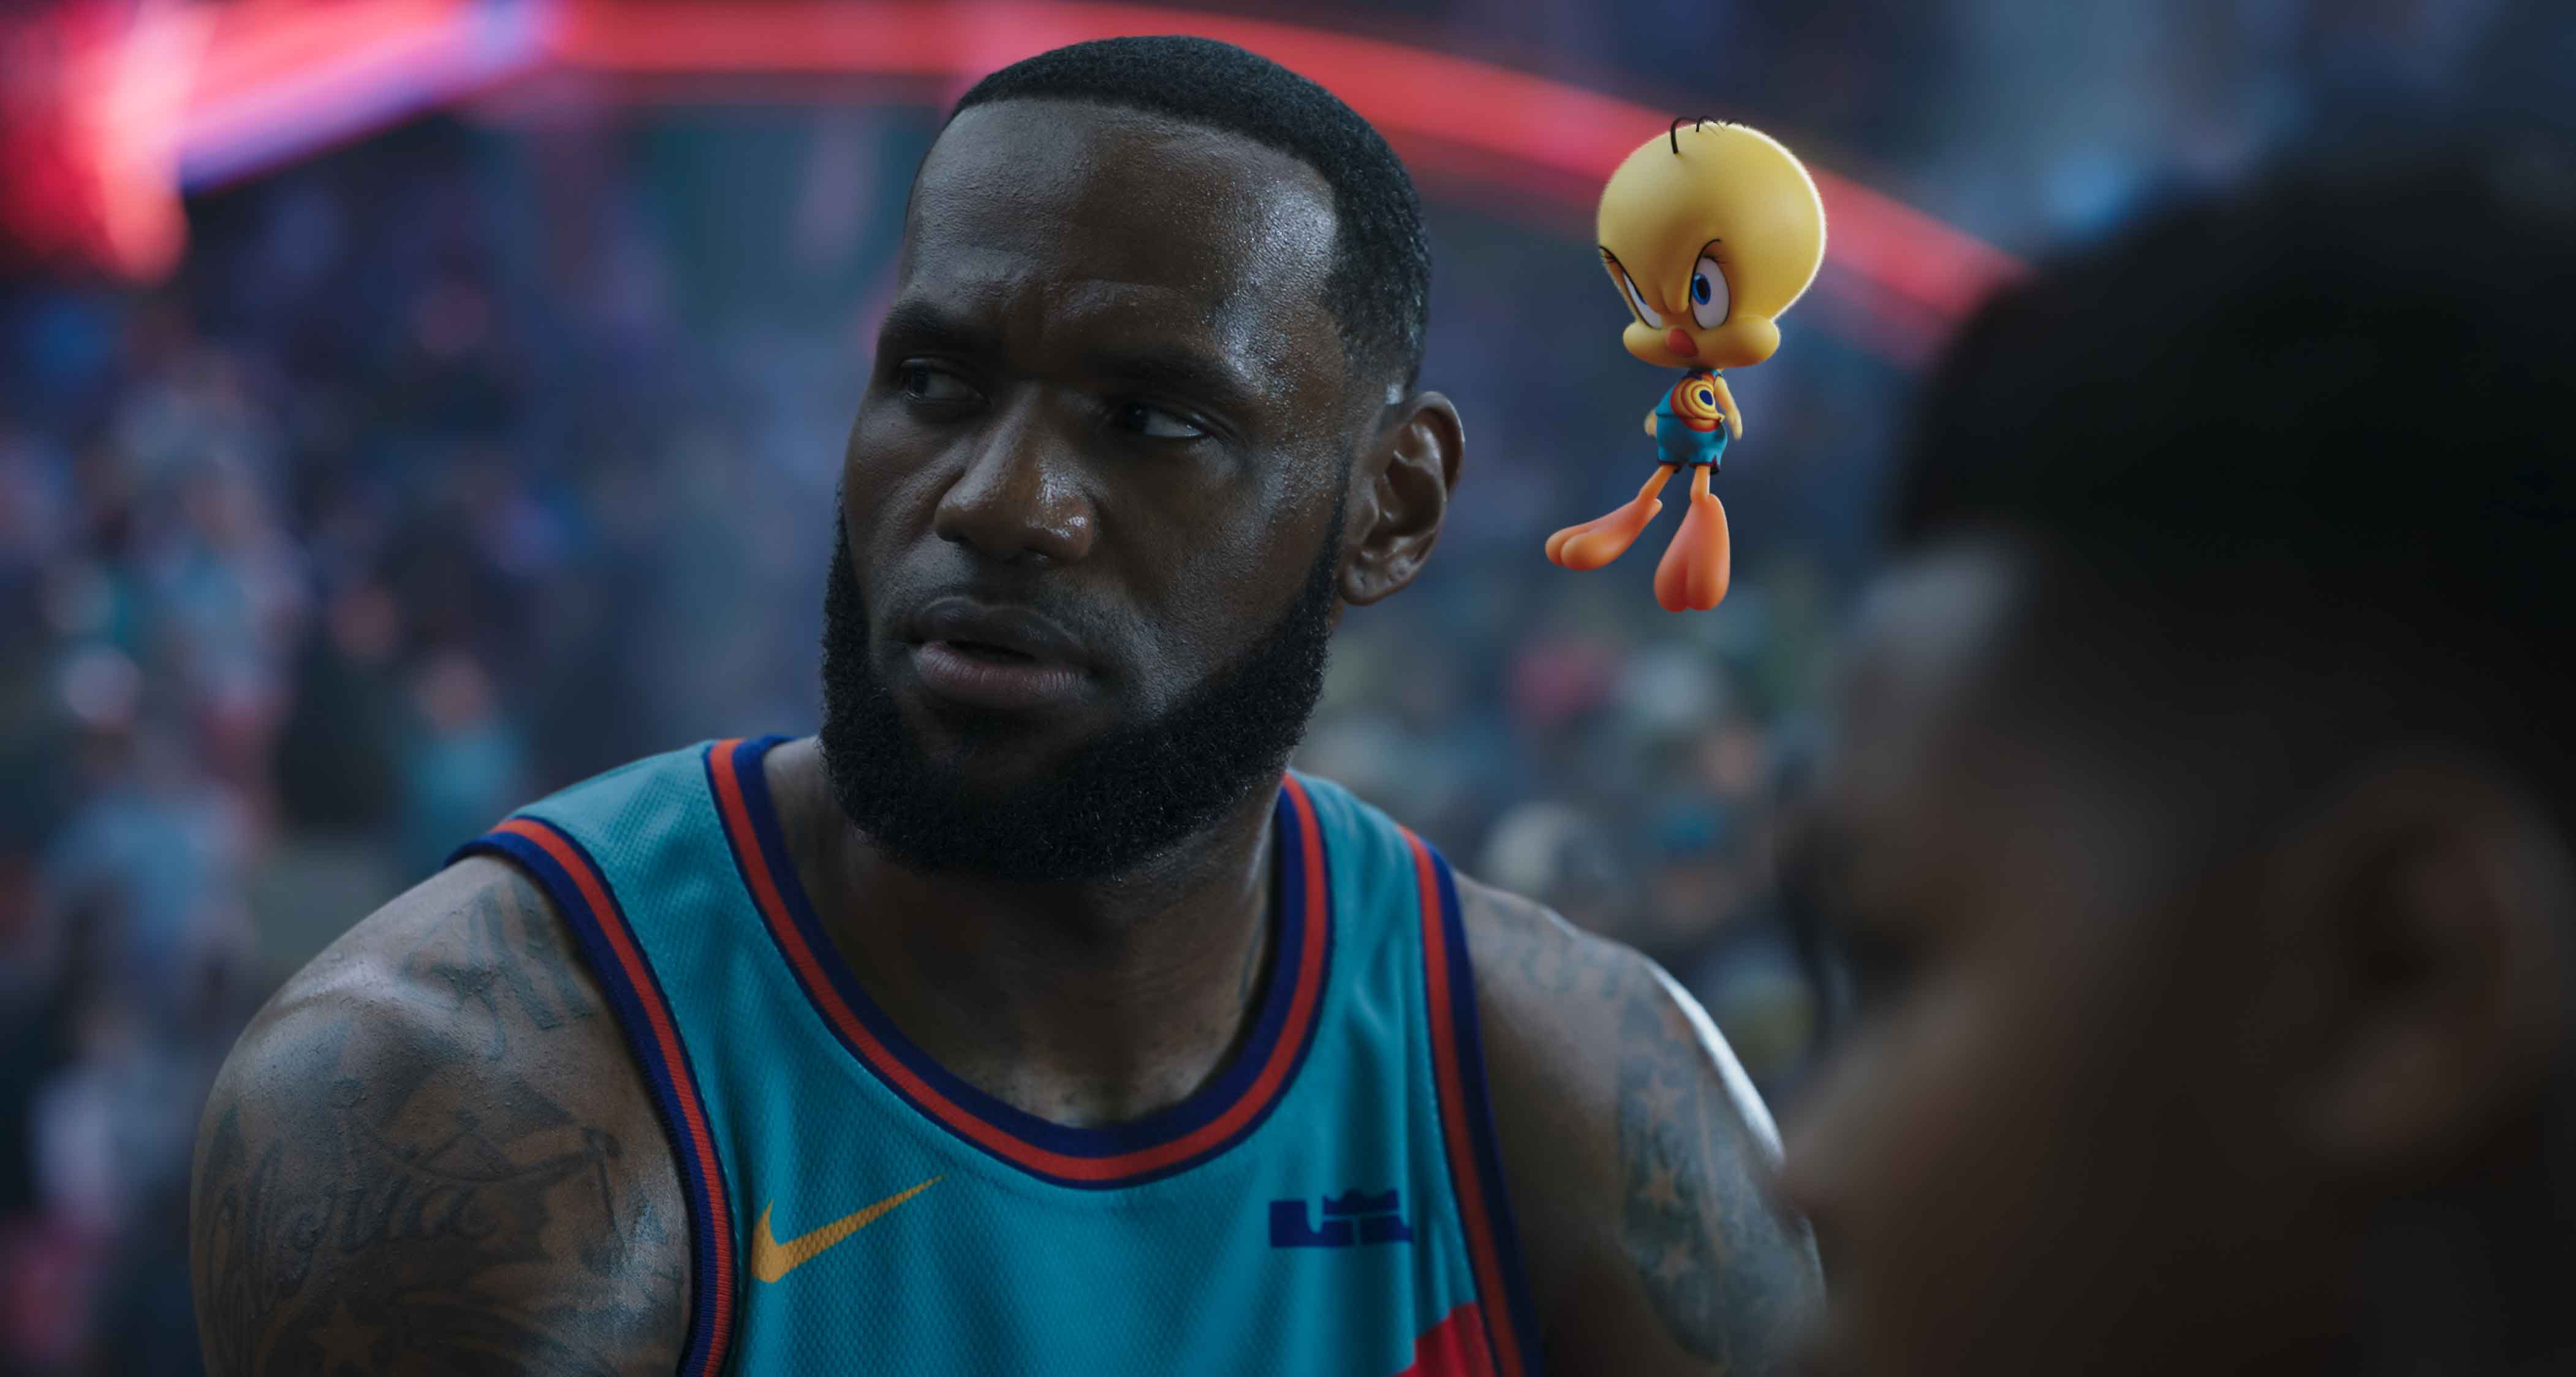 LeBron James in Space Jam: New Legends